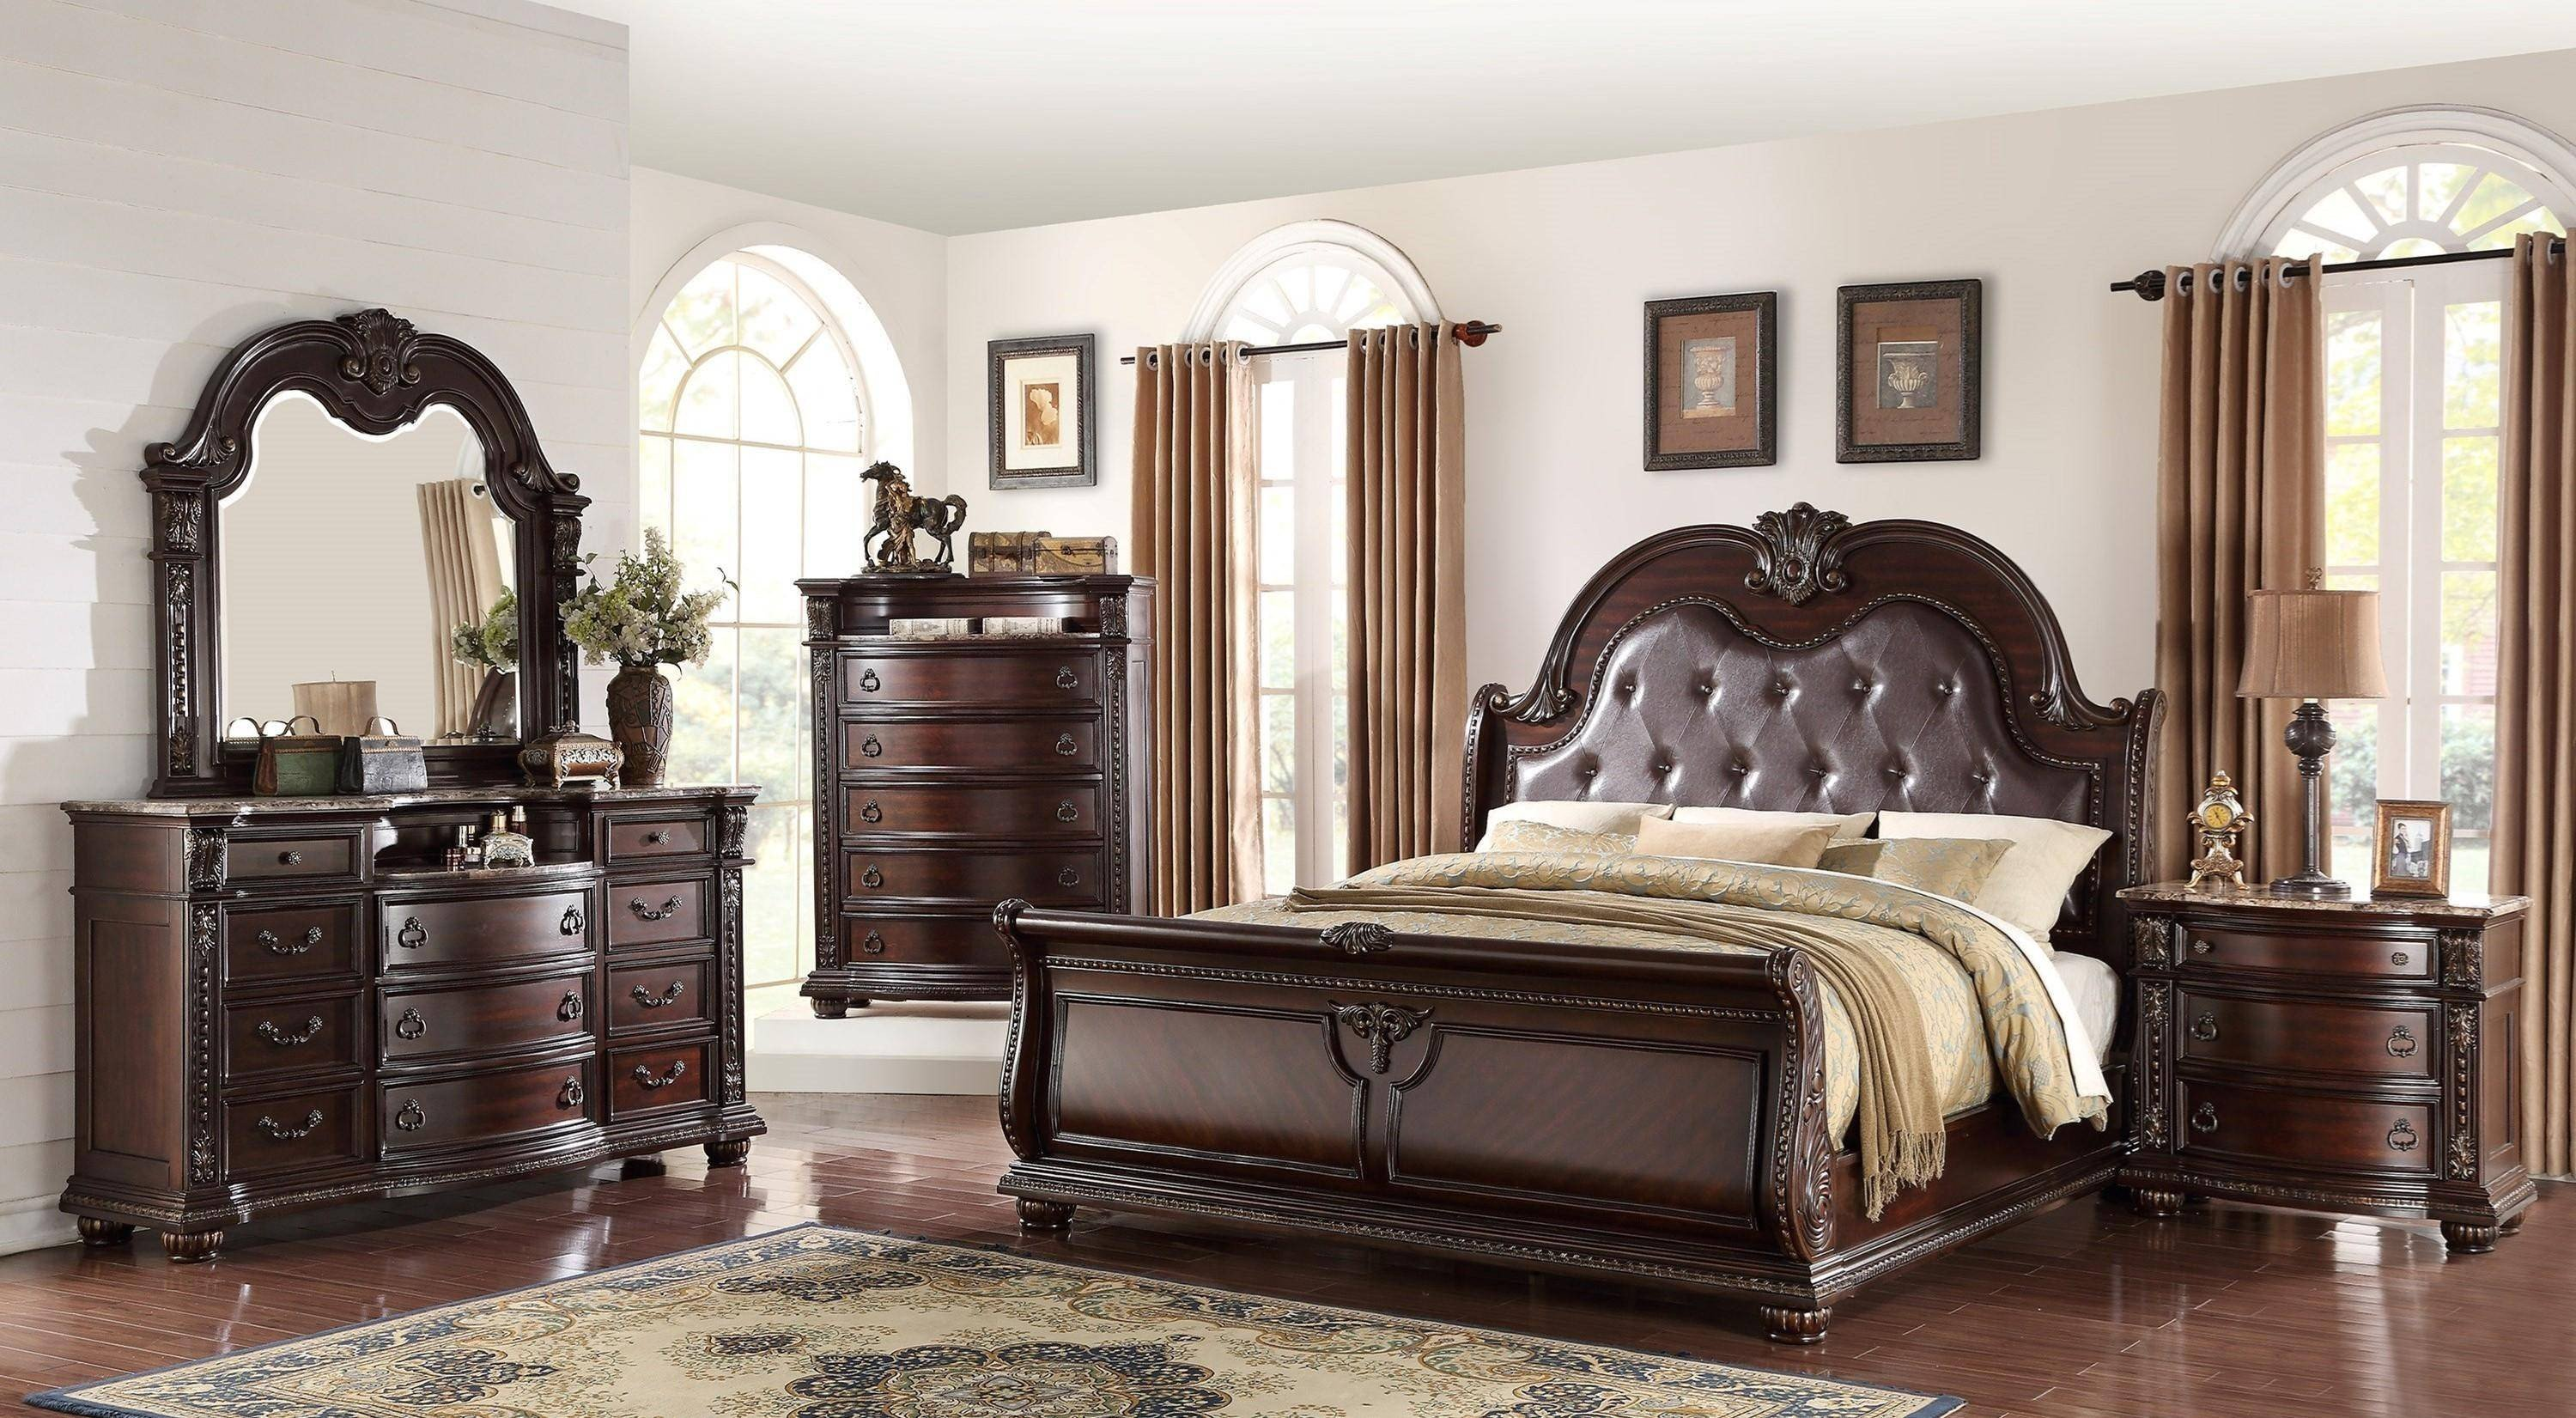 4 Piece Bedroom Set Inspirational Crown Mark B1600 Stanley Cherry Finish solid Wood King